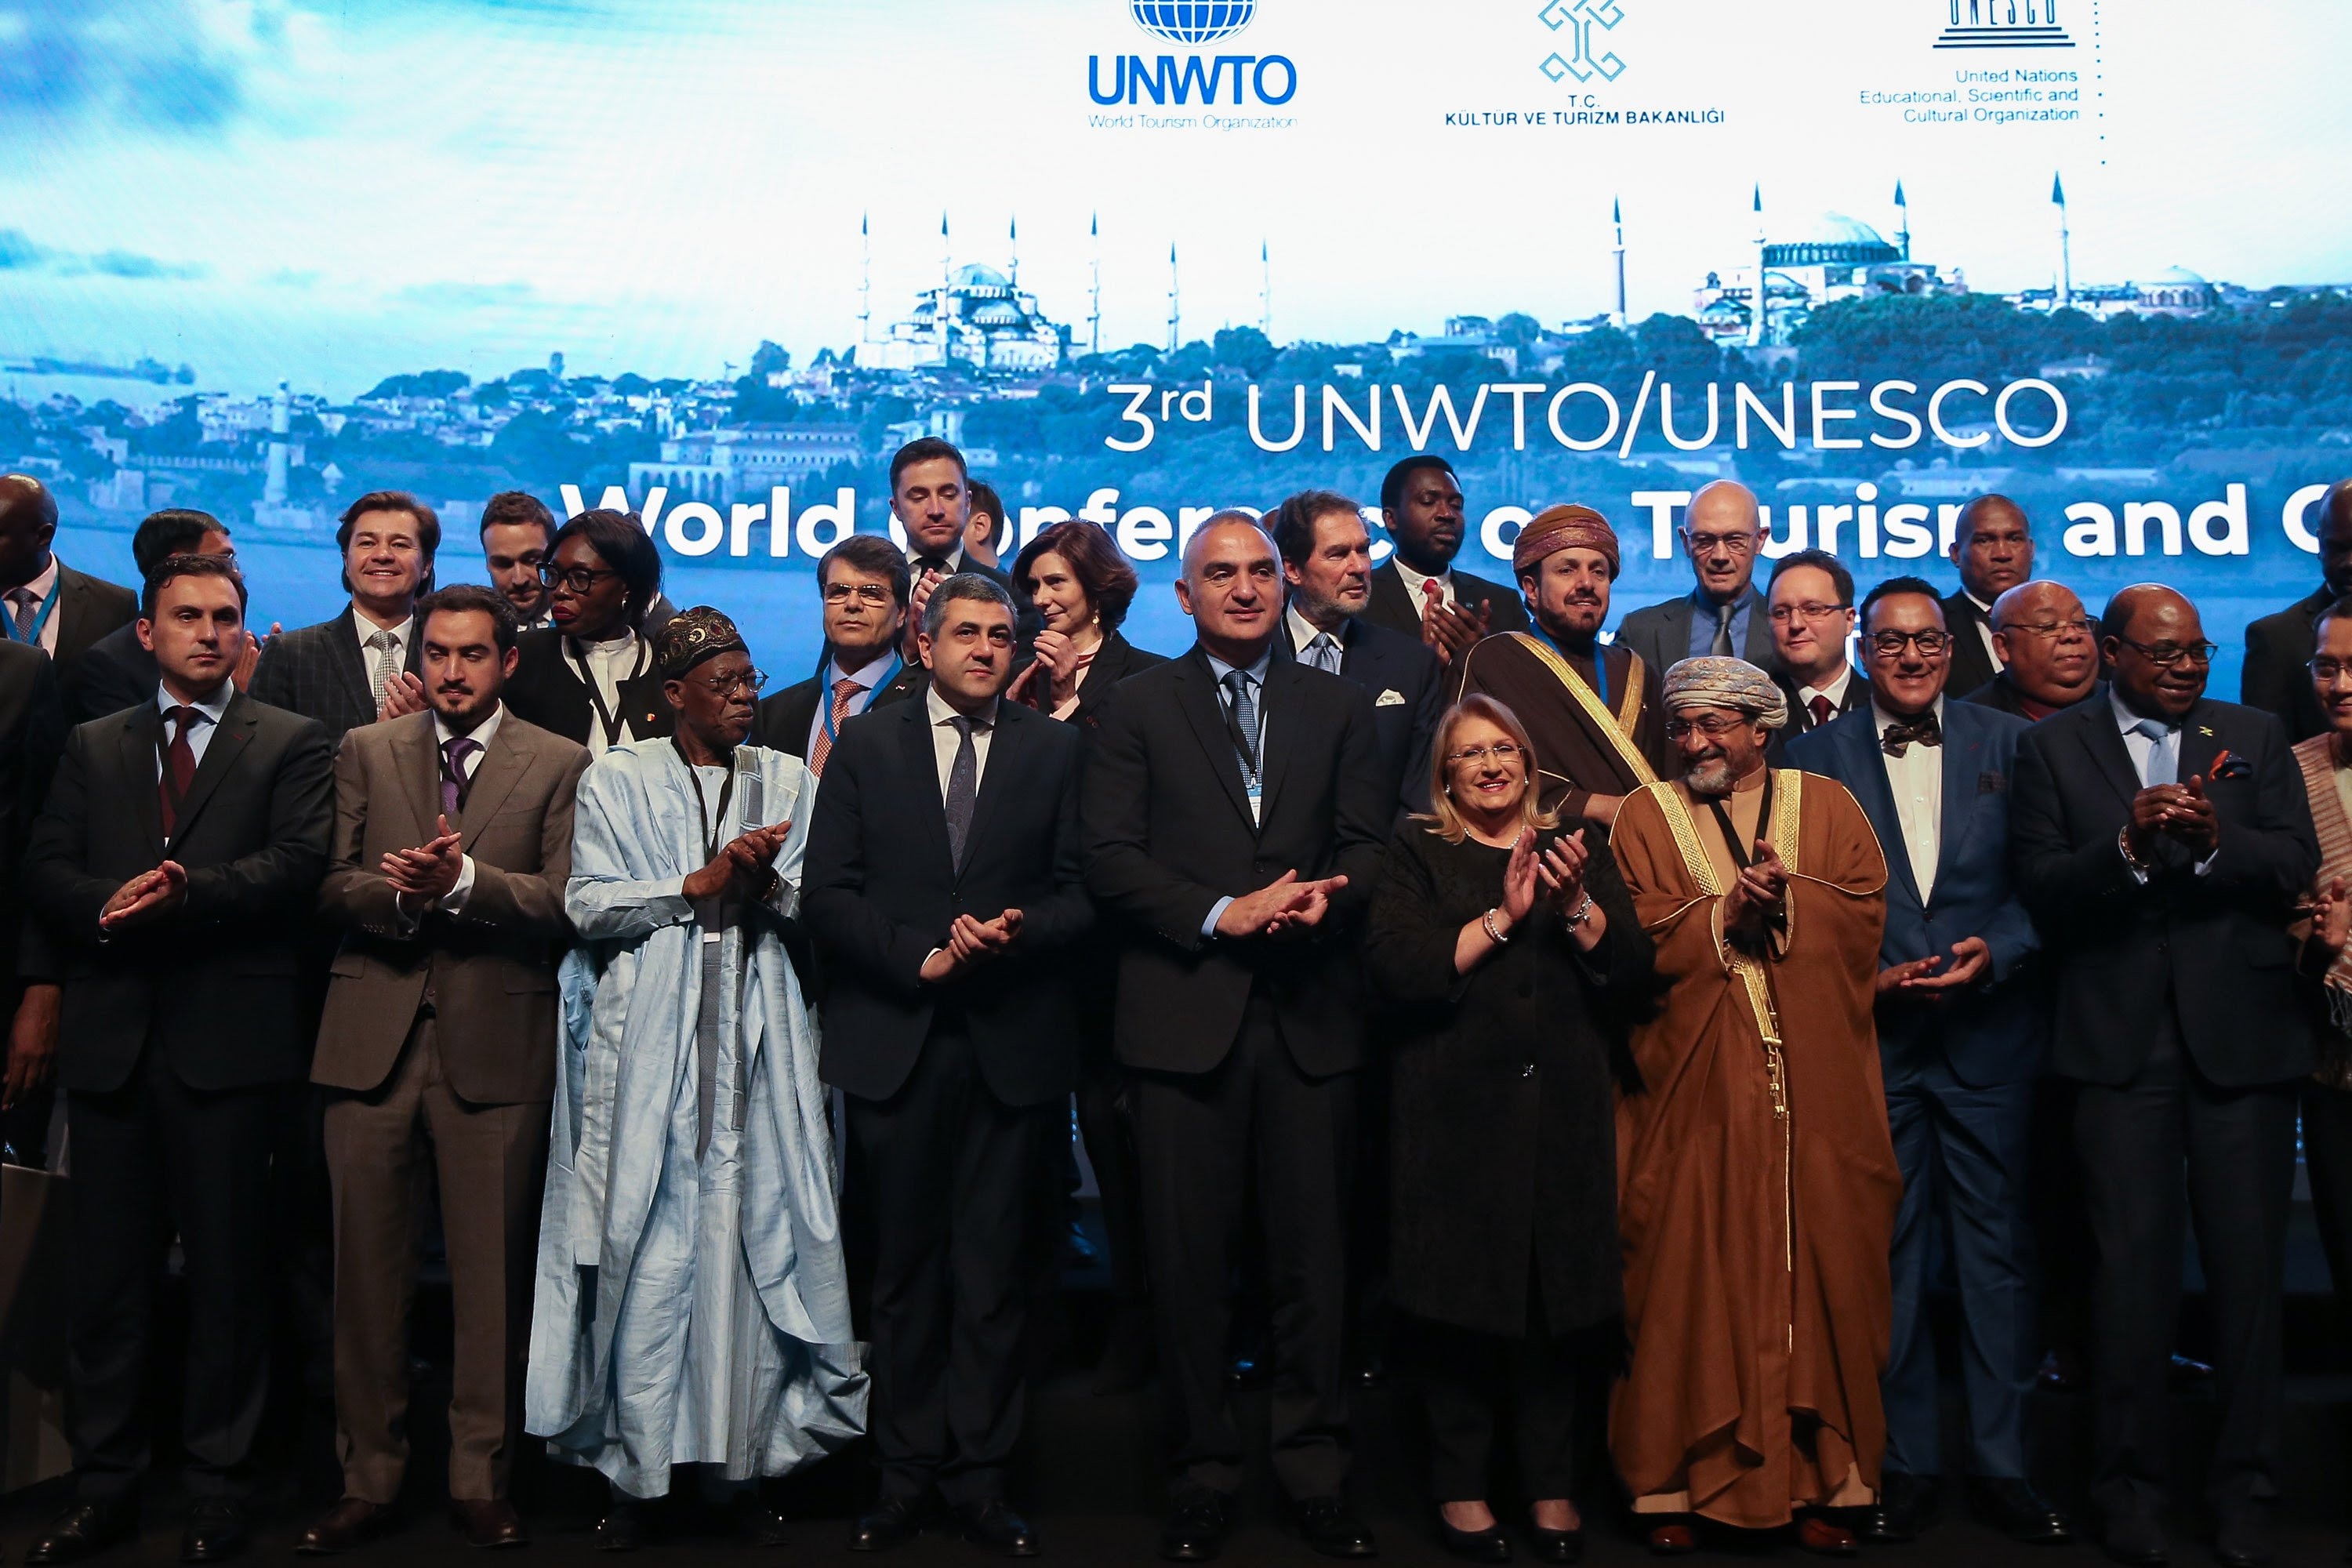 Cultural Tourism Sustains Communities and Living Heritage- UNWTO